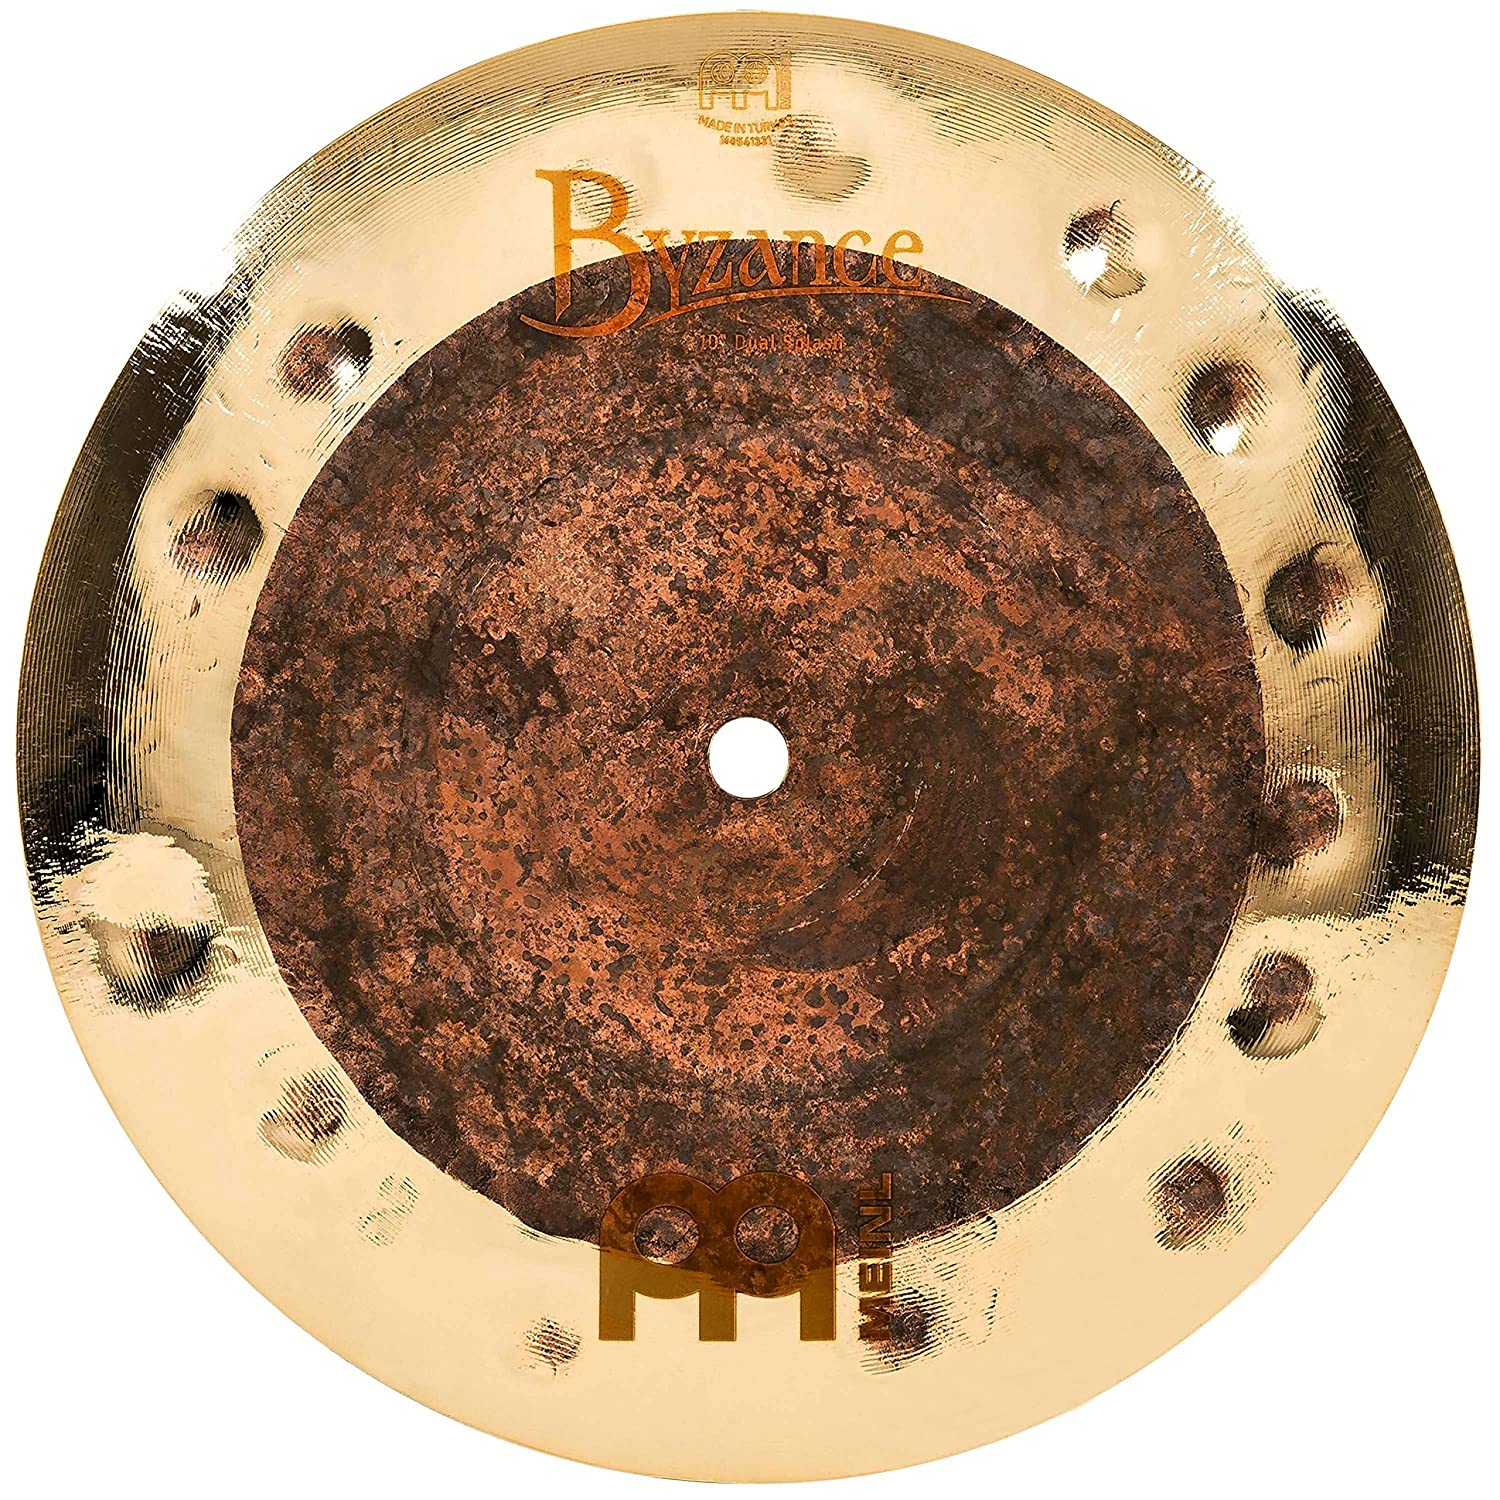 MEINL Cymbals マイネル Byzance Extra Dry Series スプラッシュシンバル 10